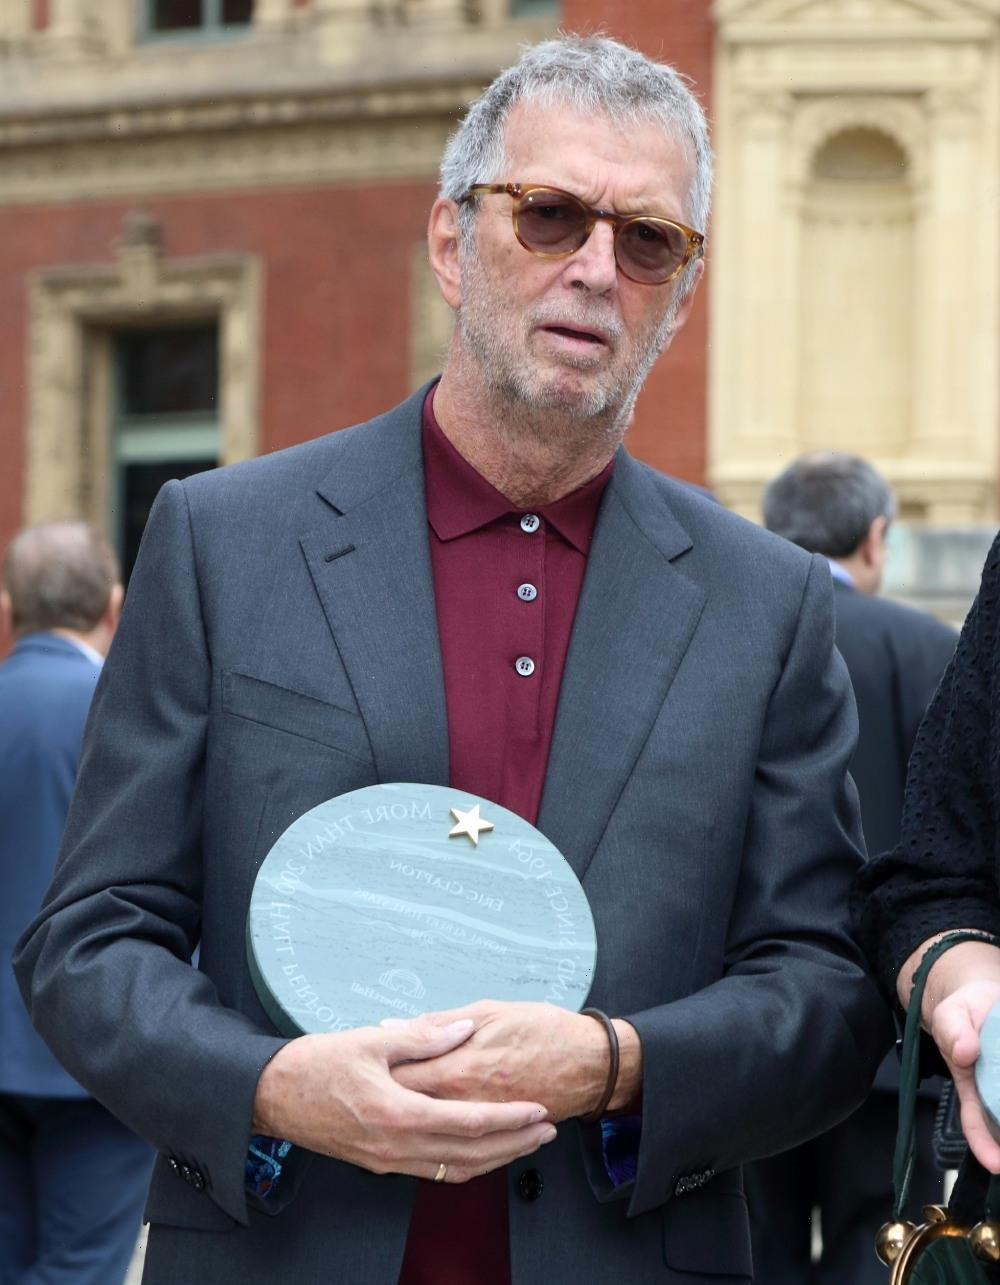 Eric Clapton had side effects with the AstraZeneca vaxx, so now he's anti-Vaxx